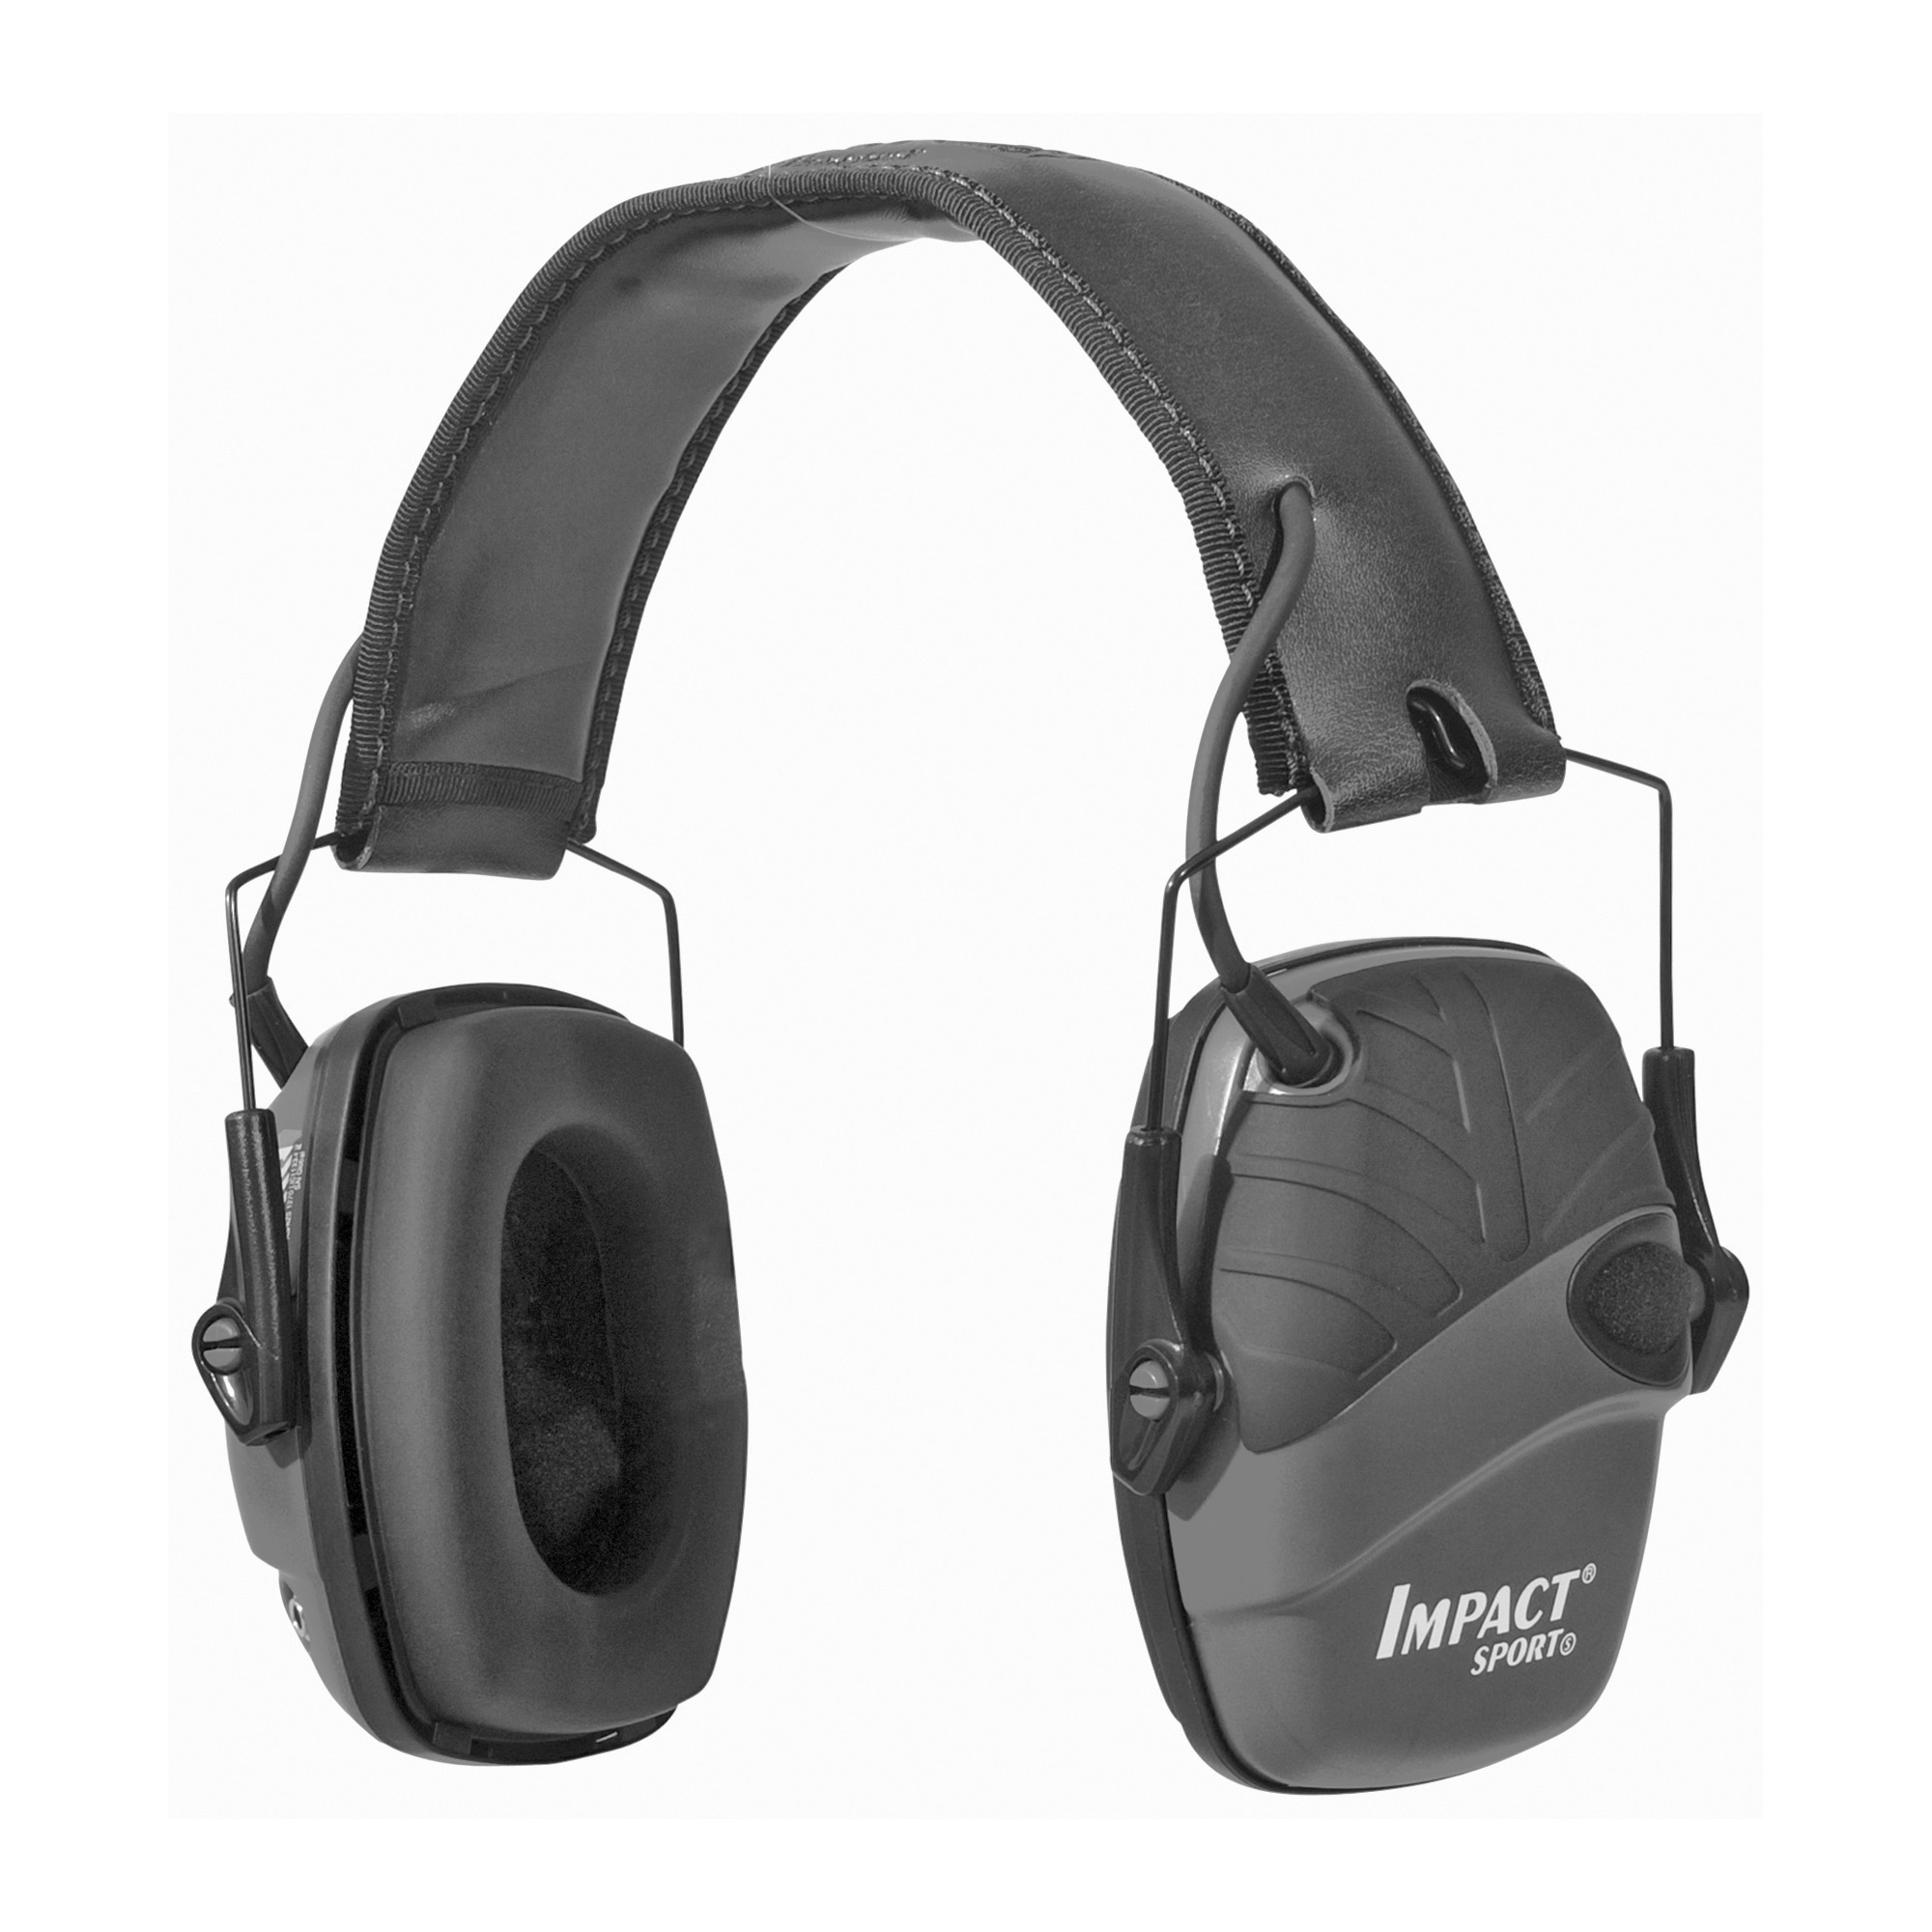 """The Impact enhances user awareness through advanced sound amplification technology. It allows wearers to hear important communication - other co-workers"""" alarms and warning signals - at a safely amplified level. Positioned microphones provide more natural"""" directional hearing. Through an advanced response technology"""" Impact reverts to passive earmuff mode when noise reaches 82 dB or above."""